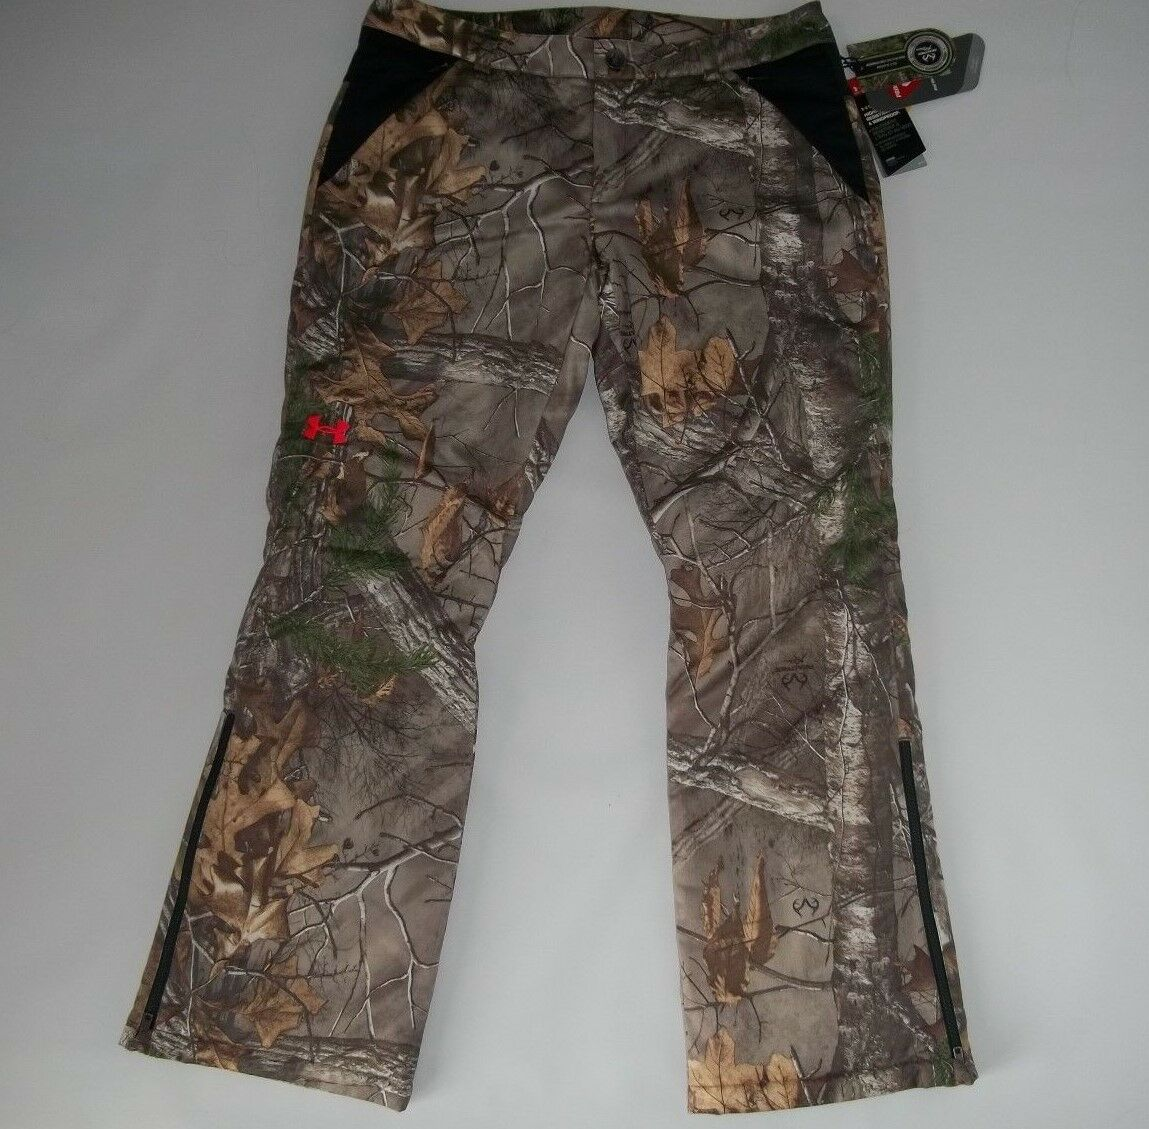 Under Armour Women's Siberian Storm Realtree Hunting Size 12